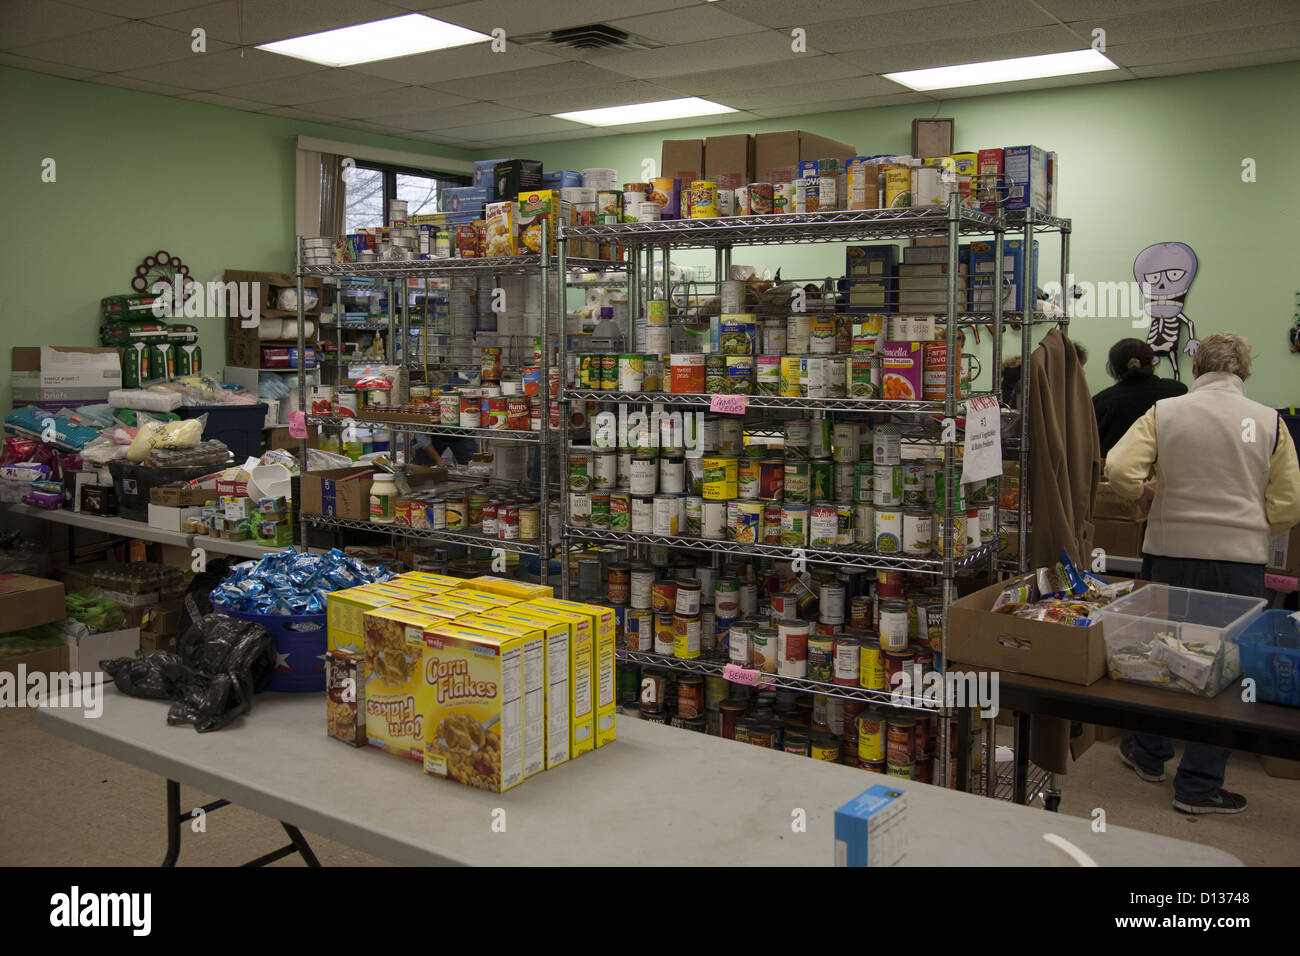 Hurricane Sandy Relief Center along the Jersey Shore in Monmouth County, New Jersey. Food Pantry - Stock Image